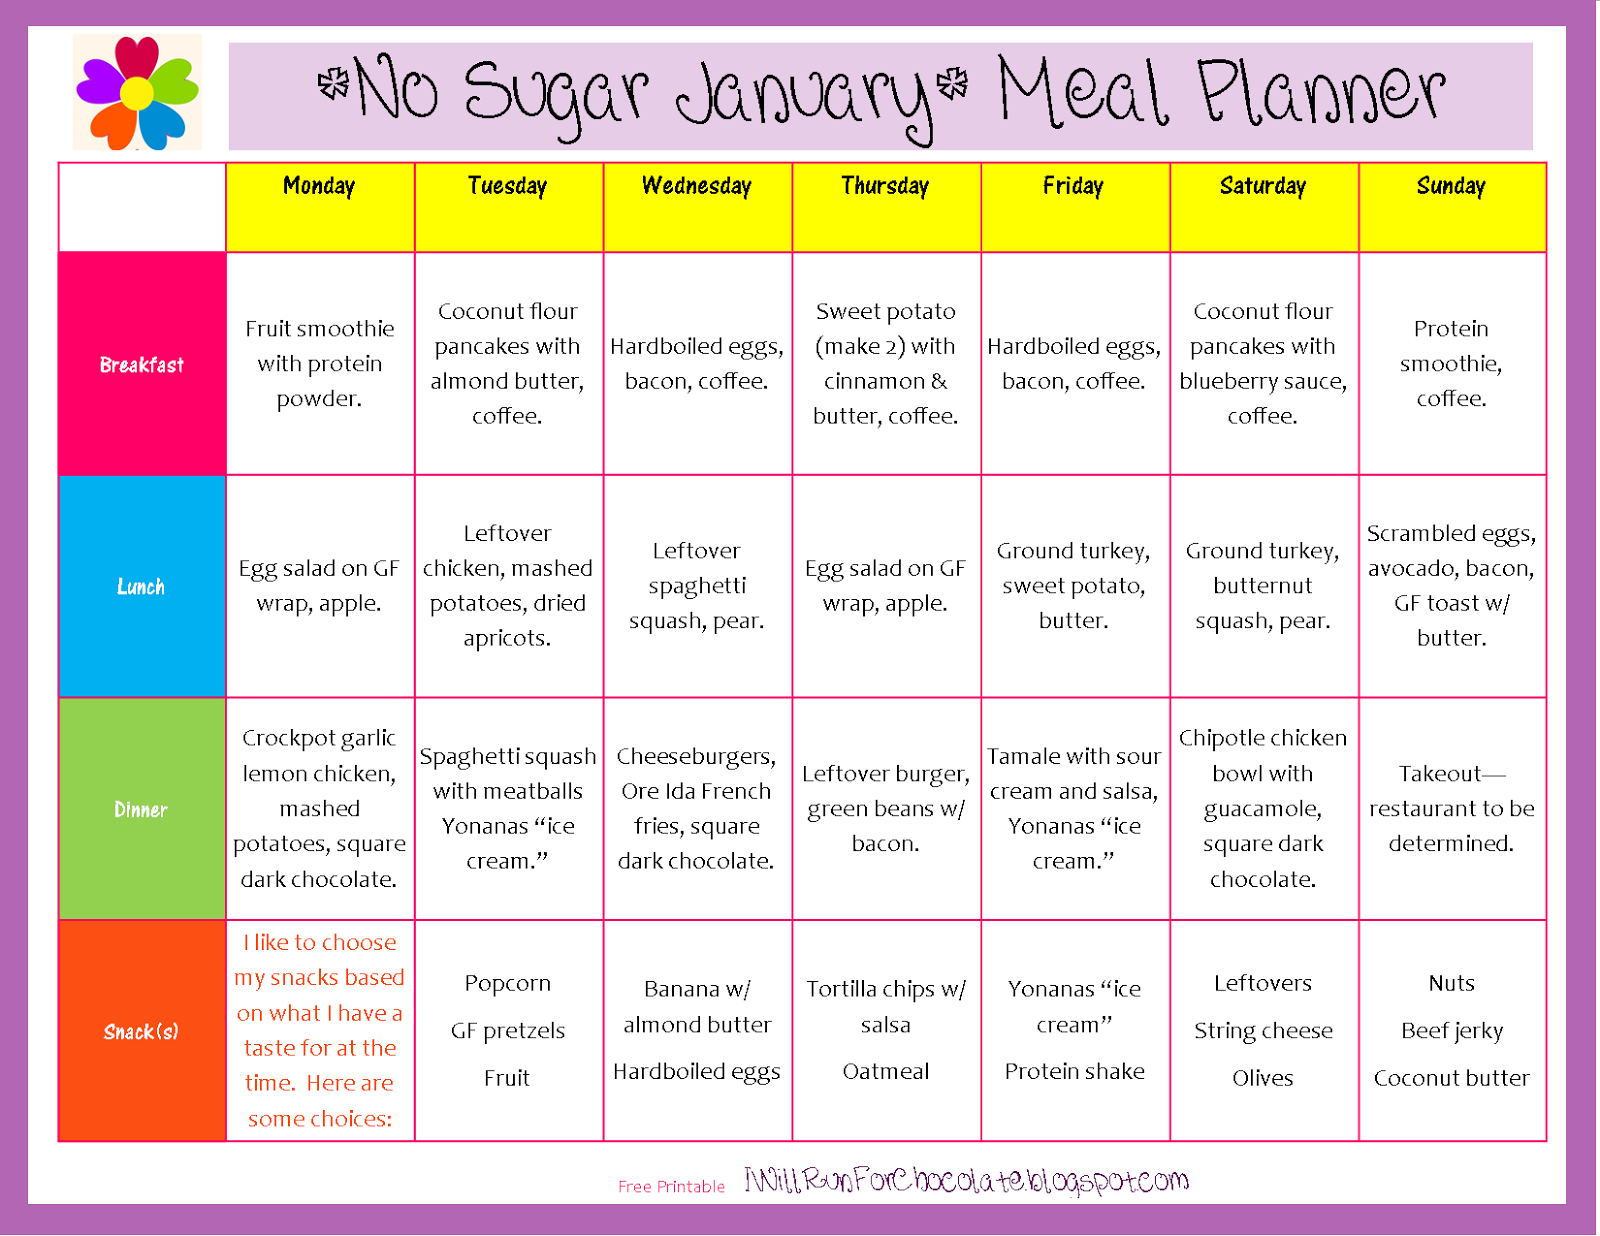 Plan Your Meals for a Successful Sugar Free January!  Weigh to